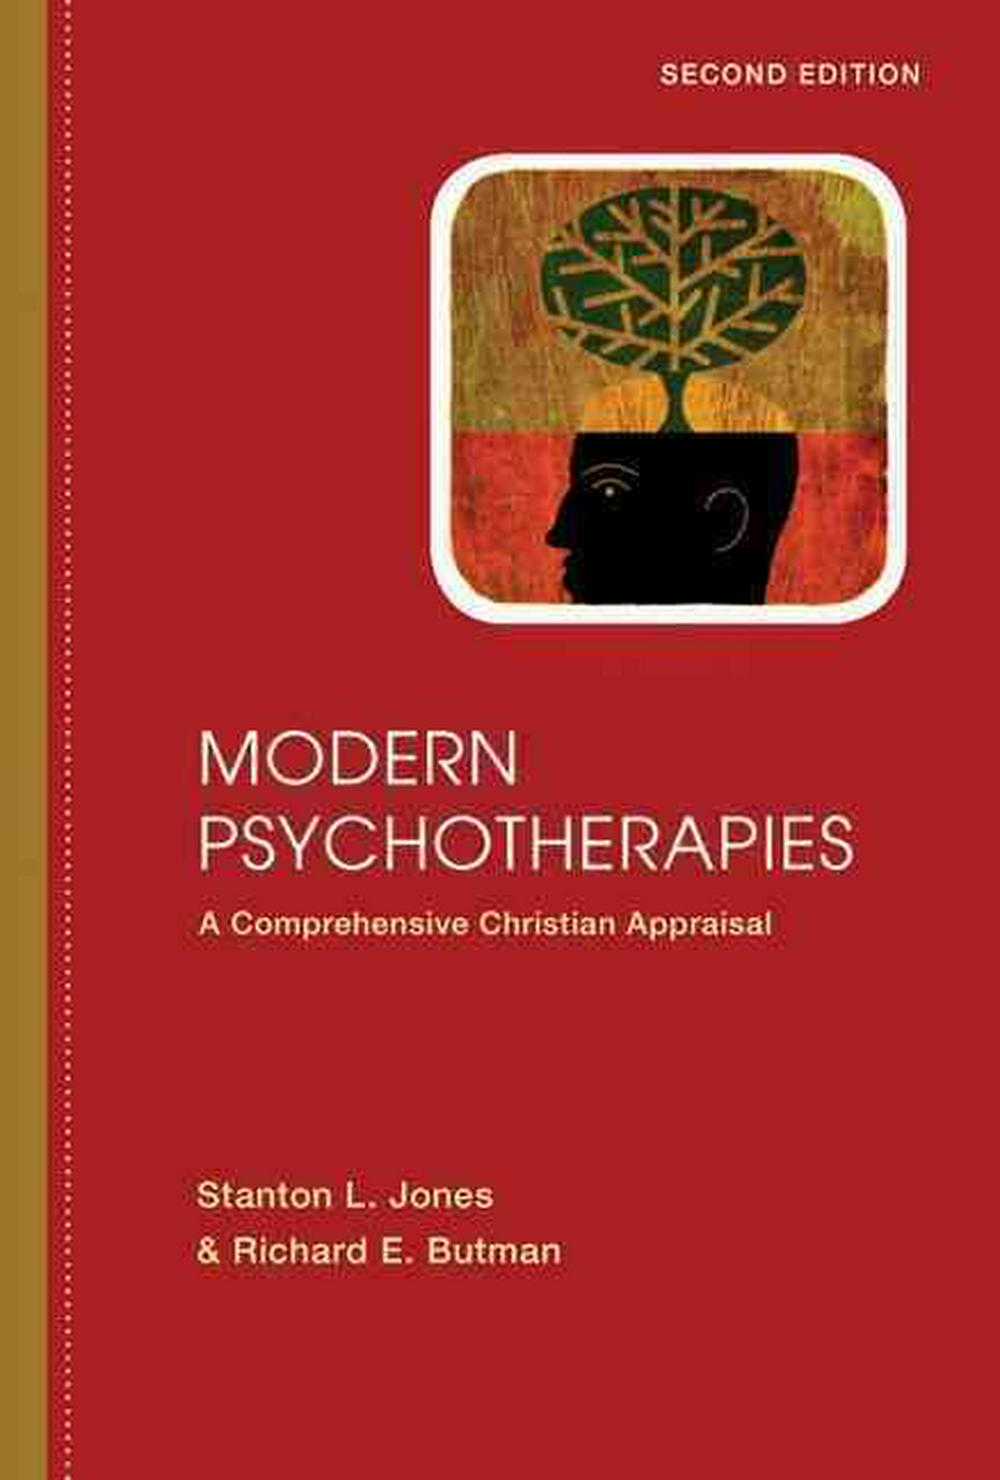 Modern Psychotherapies by Stanton L Jones, ISBN: 9780830828524